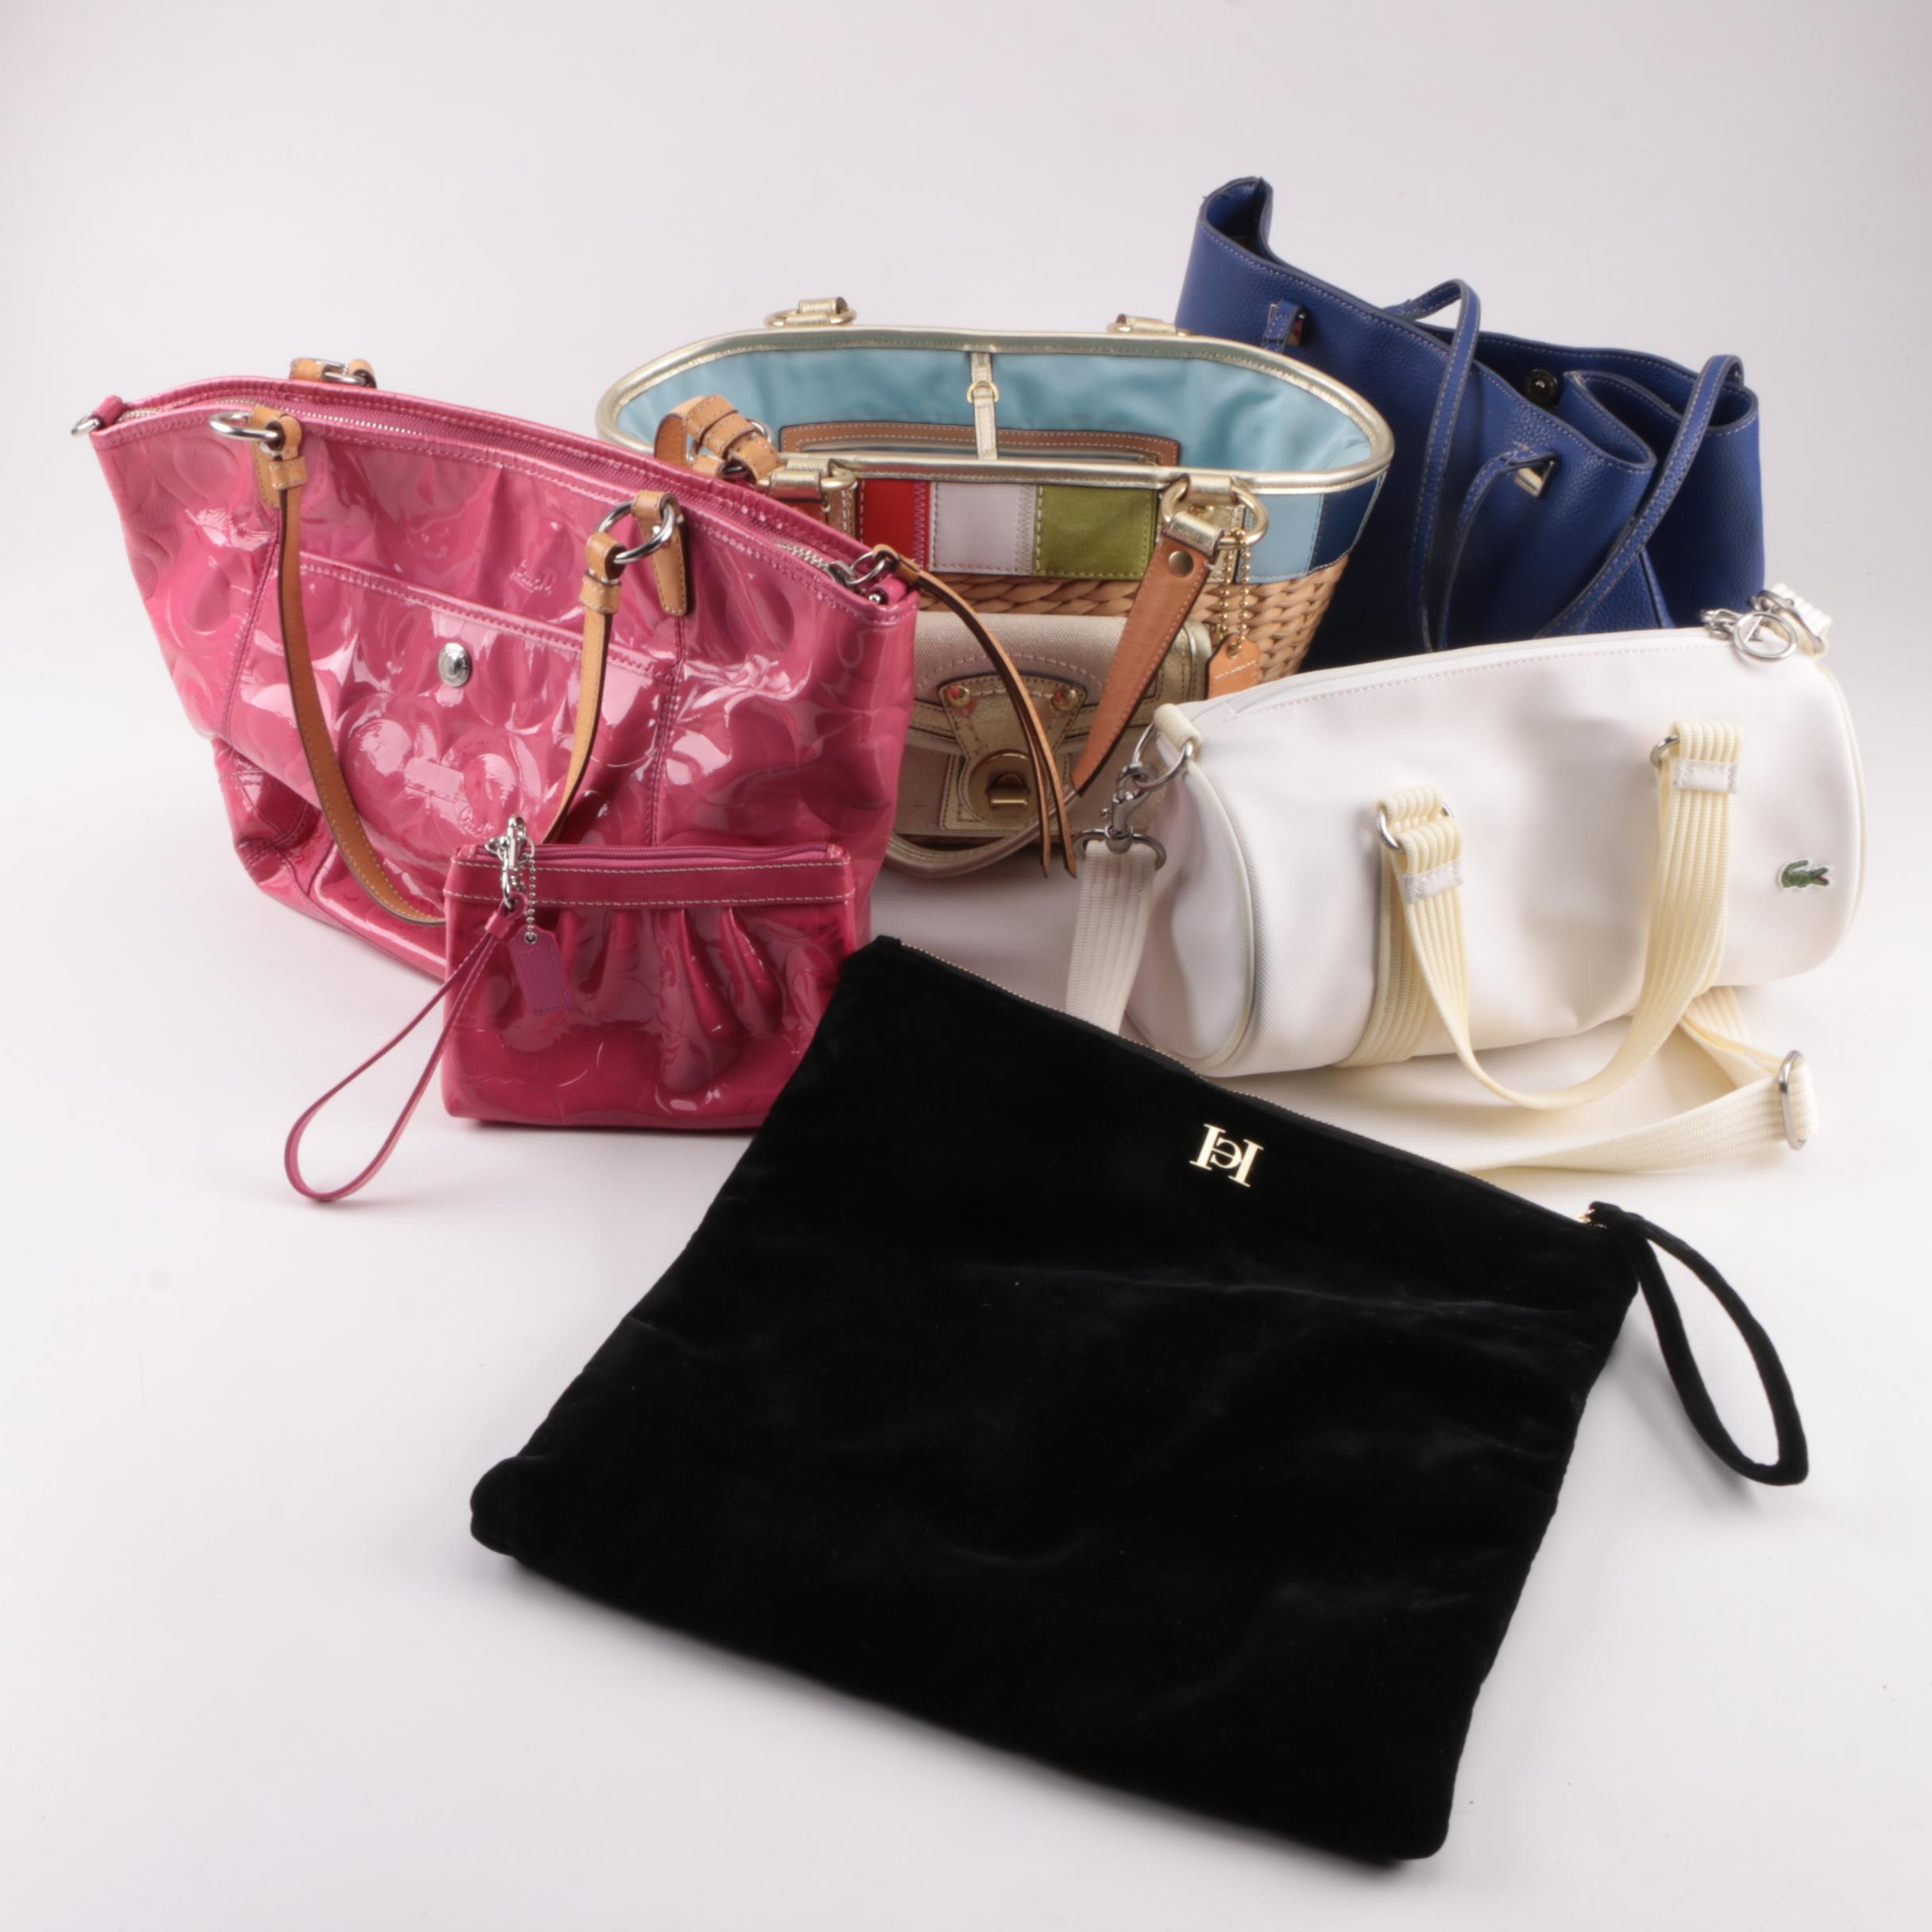 Coach Basket and Leah Patent Leather Totes with Others Including Lacoste